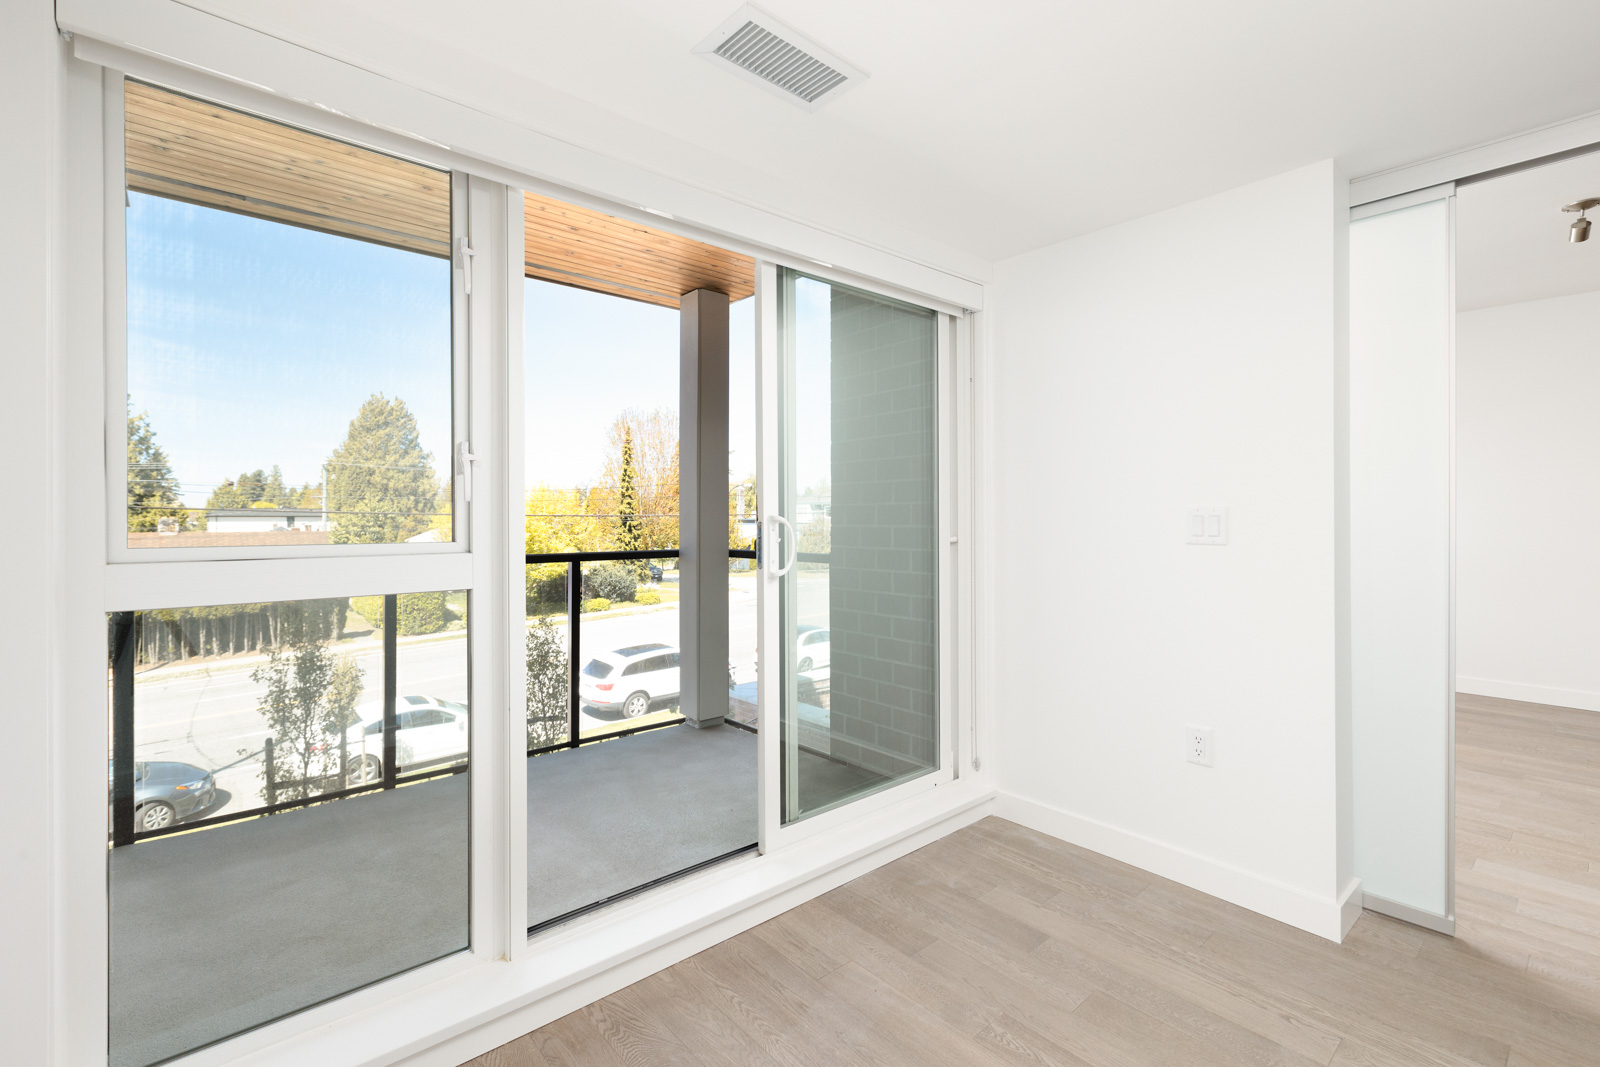 Sliding glass doors open onto private balcony of Vancouver rental townhome.